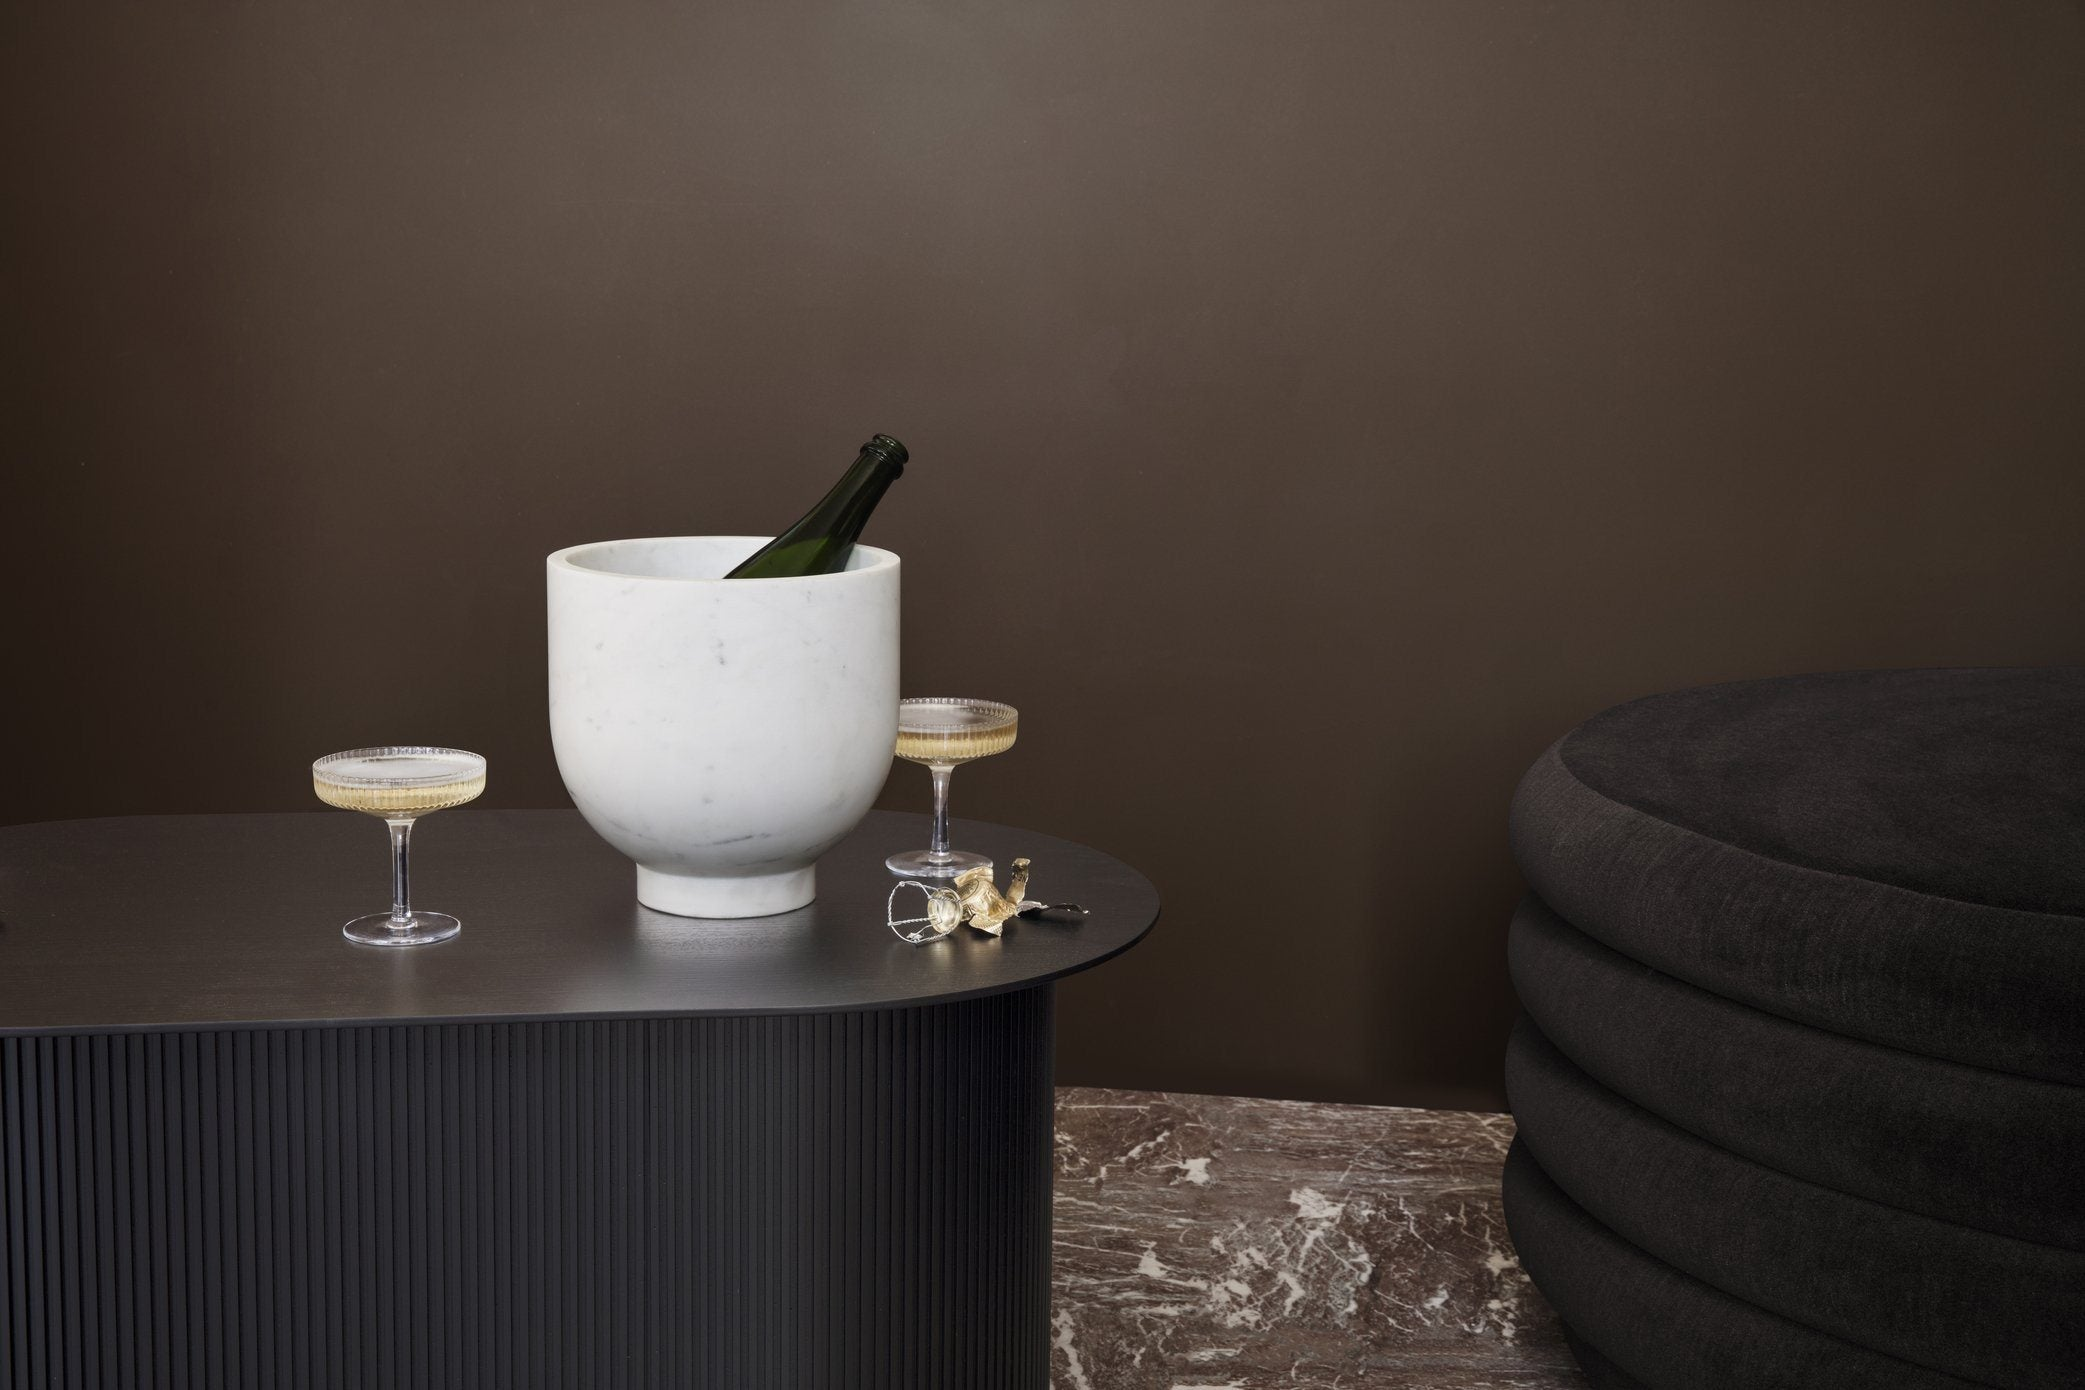 Ferm Living Alza Champagne Cooler